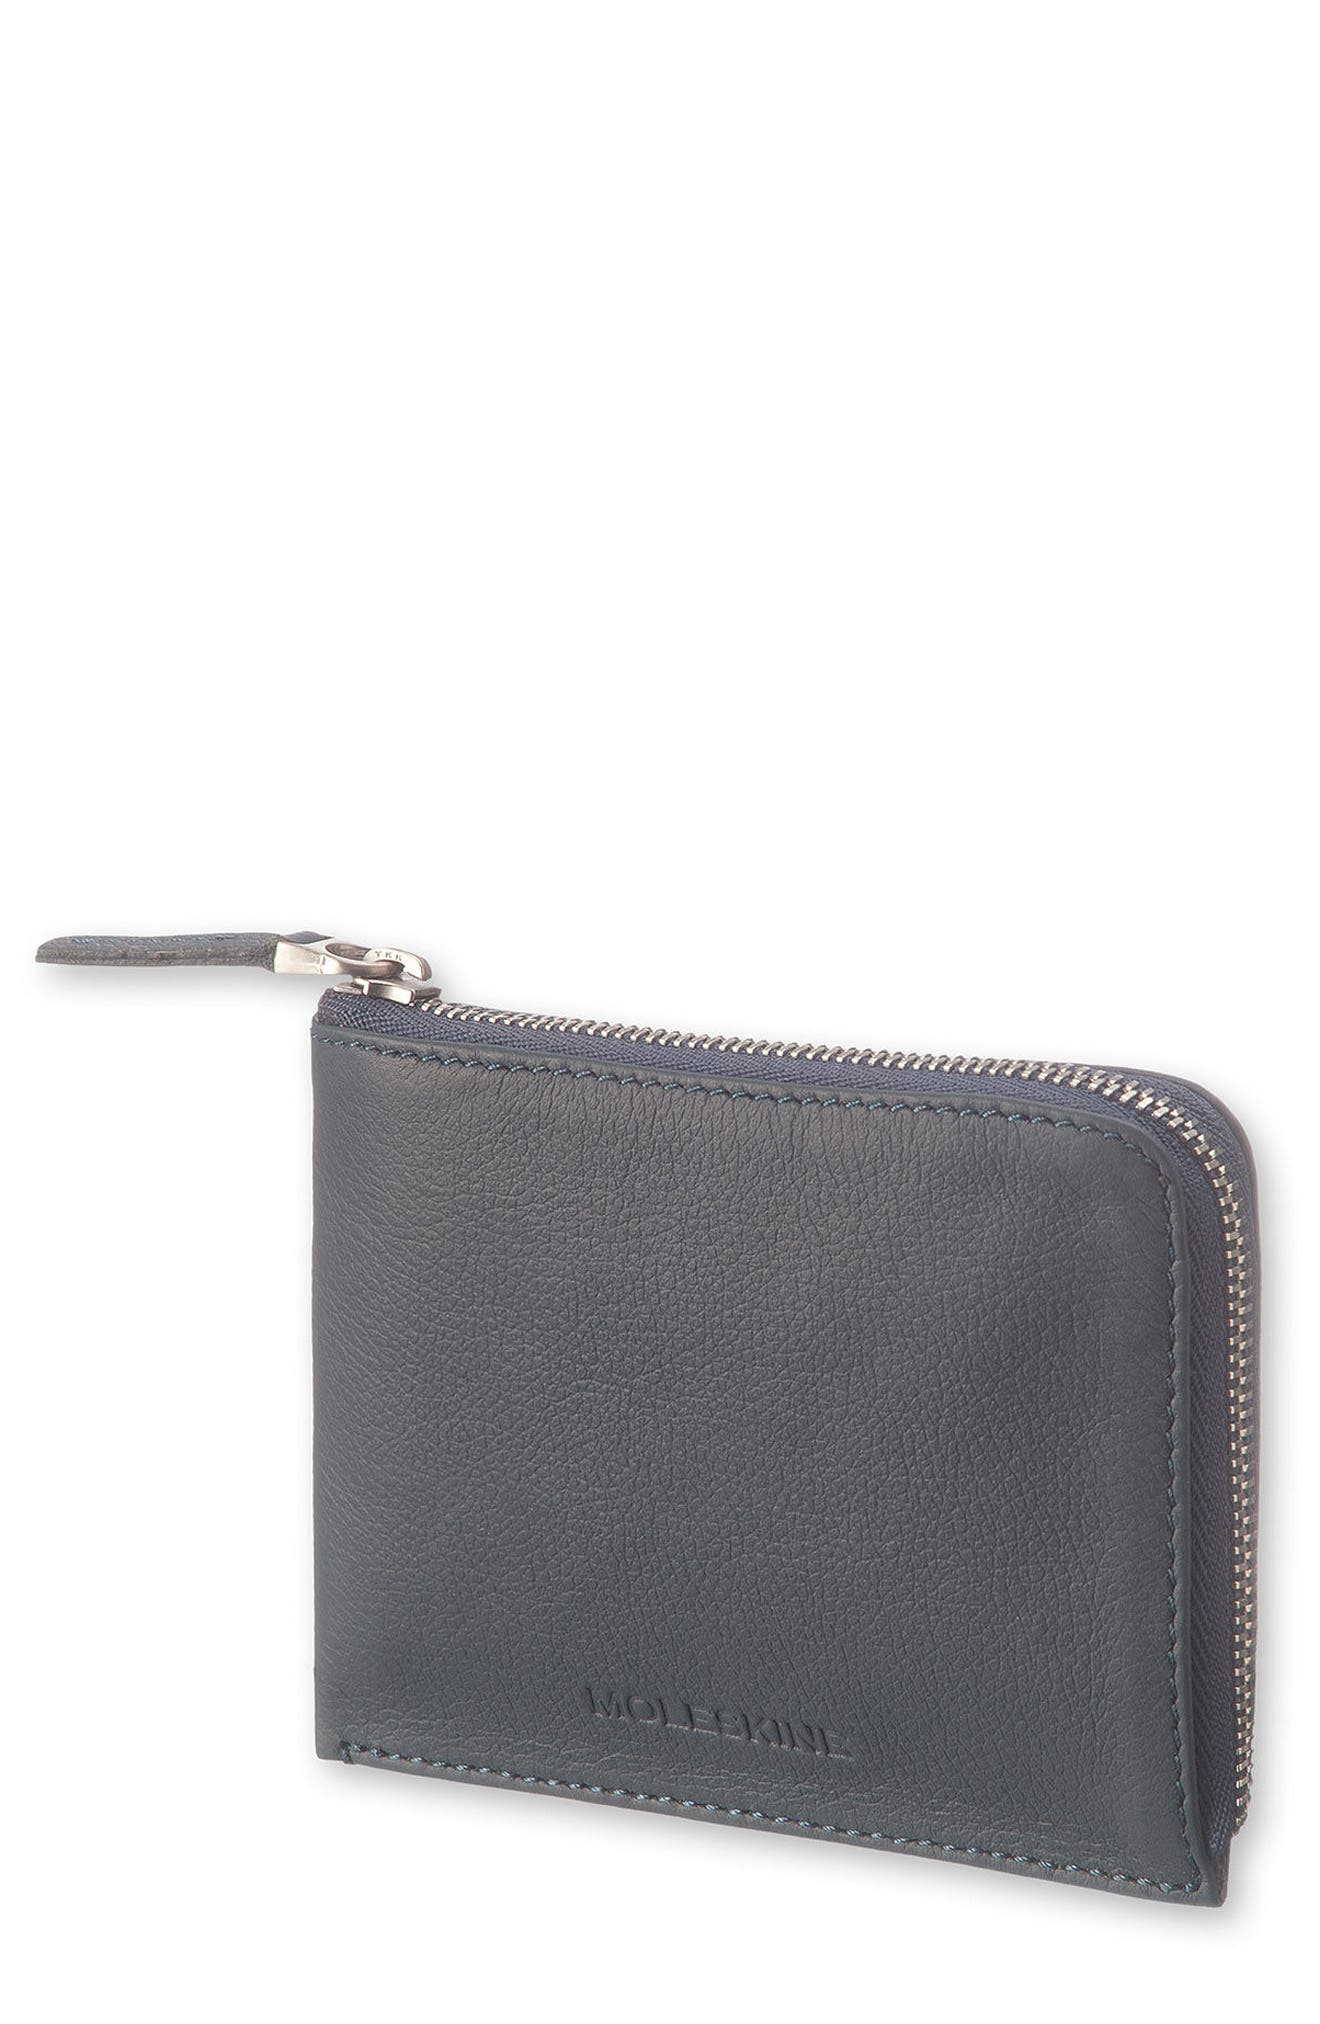 Lineage Leather Zip Wallet,                             Main thumbnail 1, color,                             AVIO BLUE